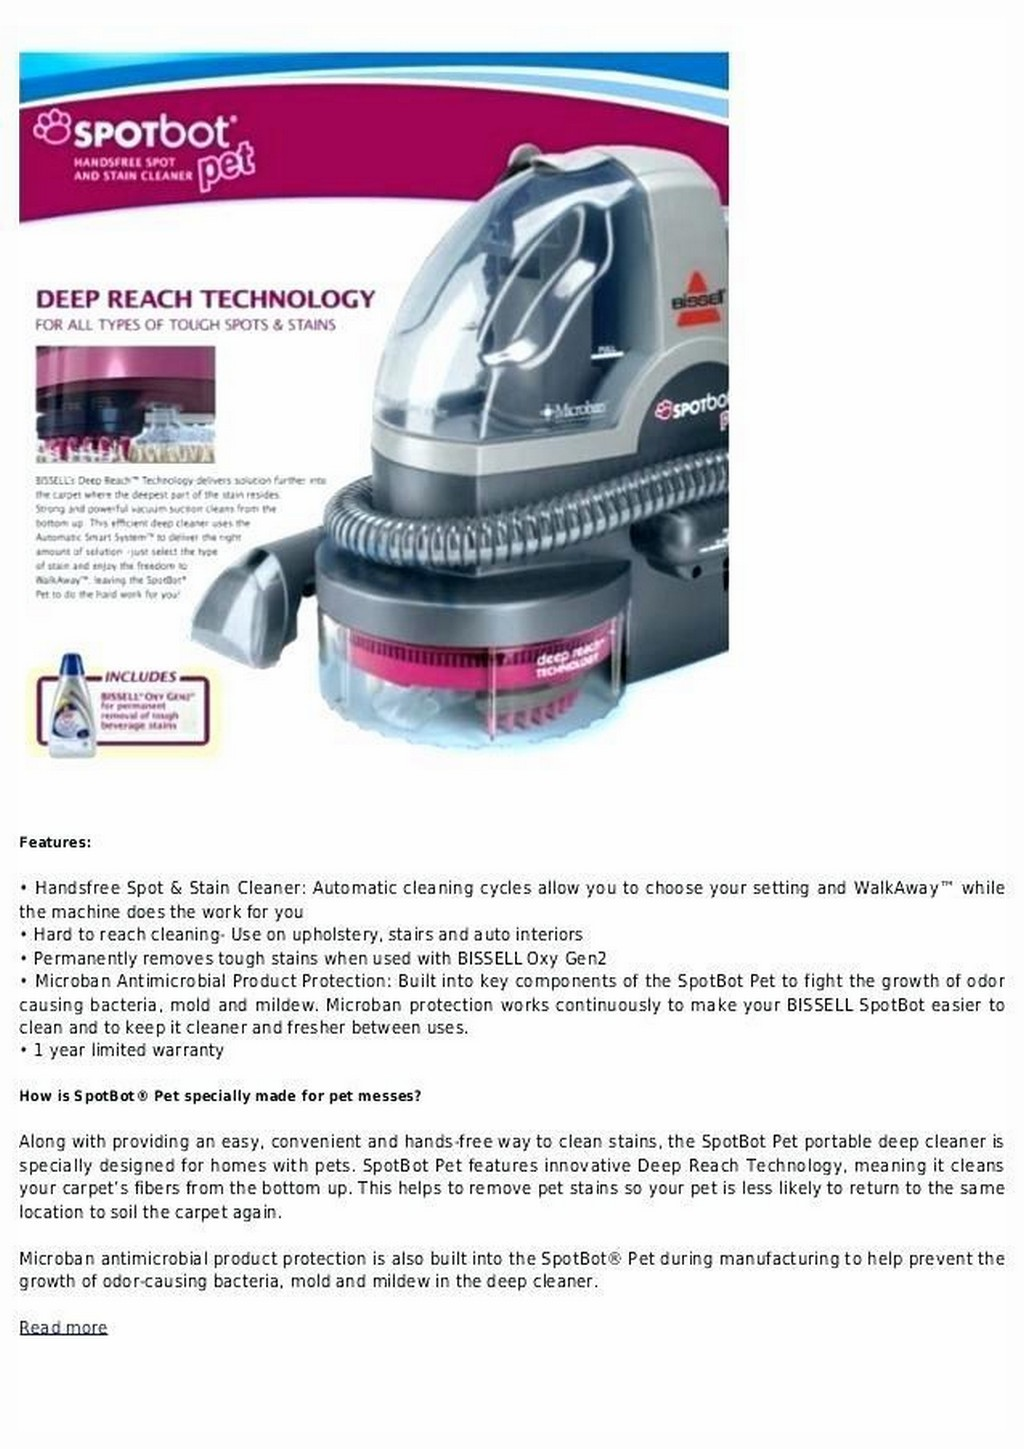 bissell deep clean premier pet instruction manual